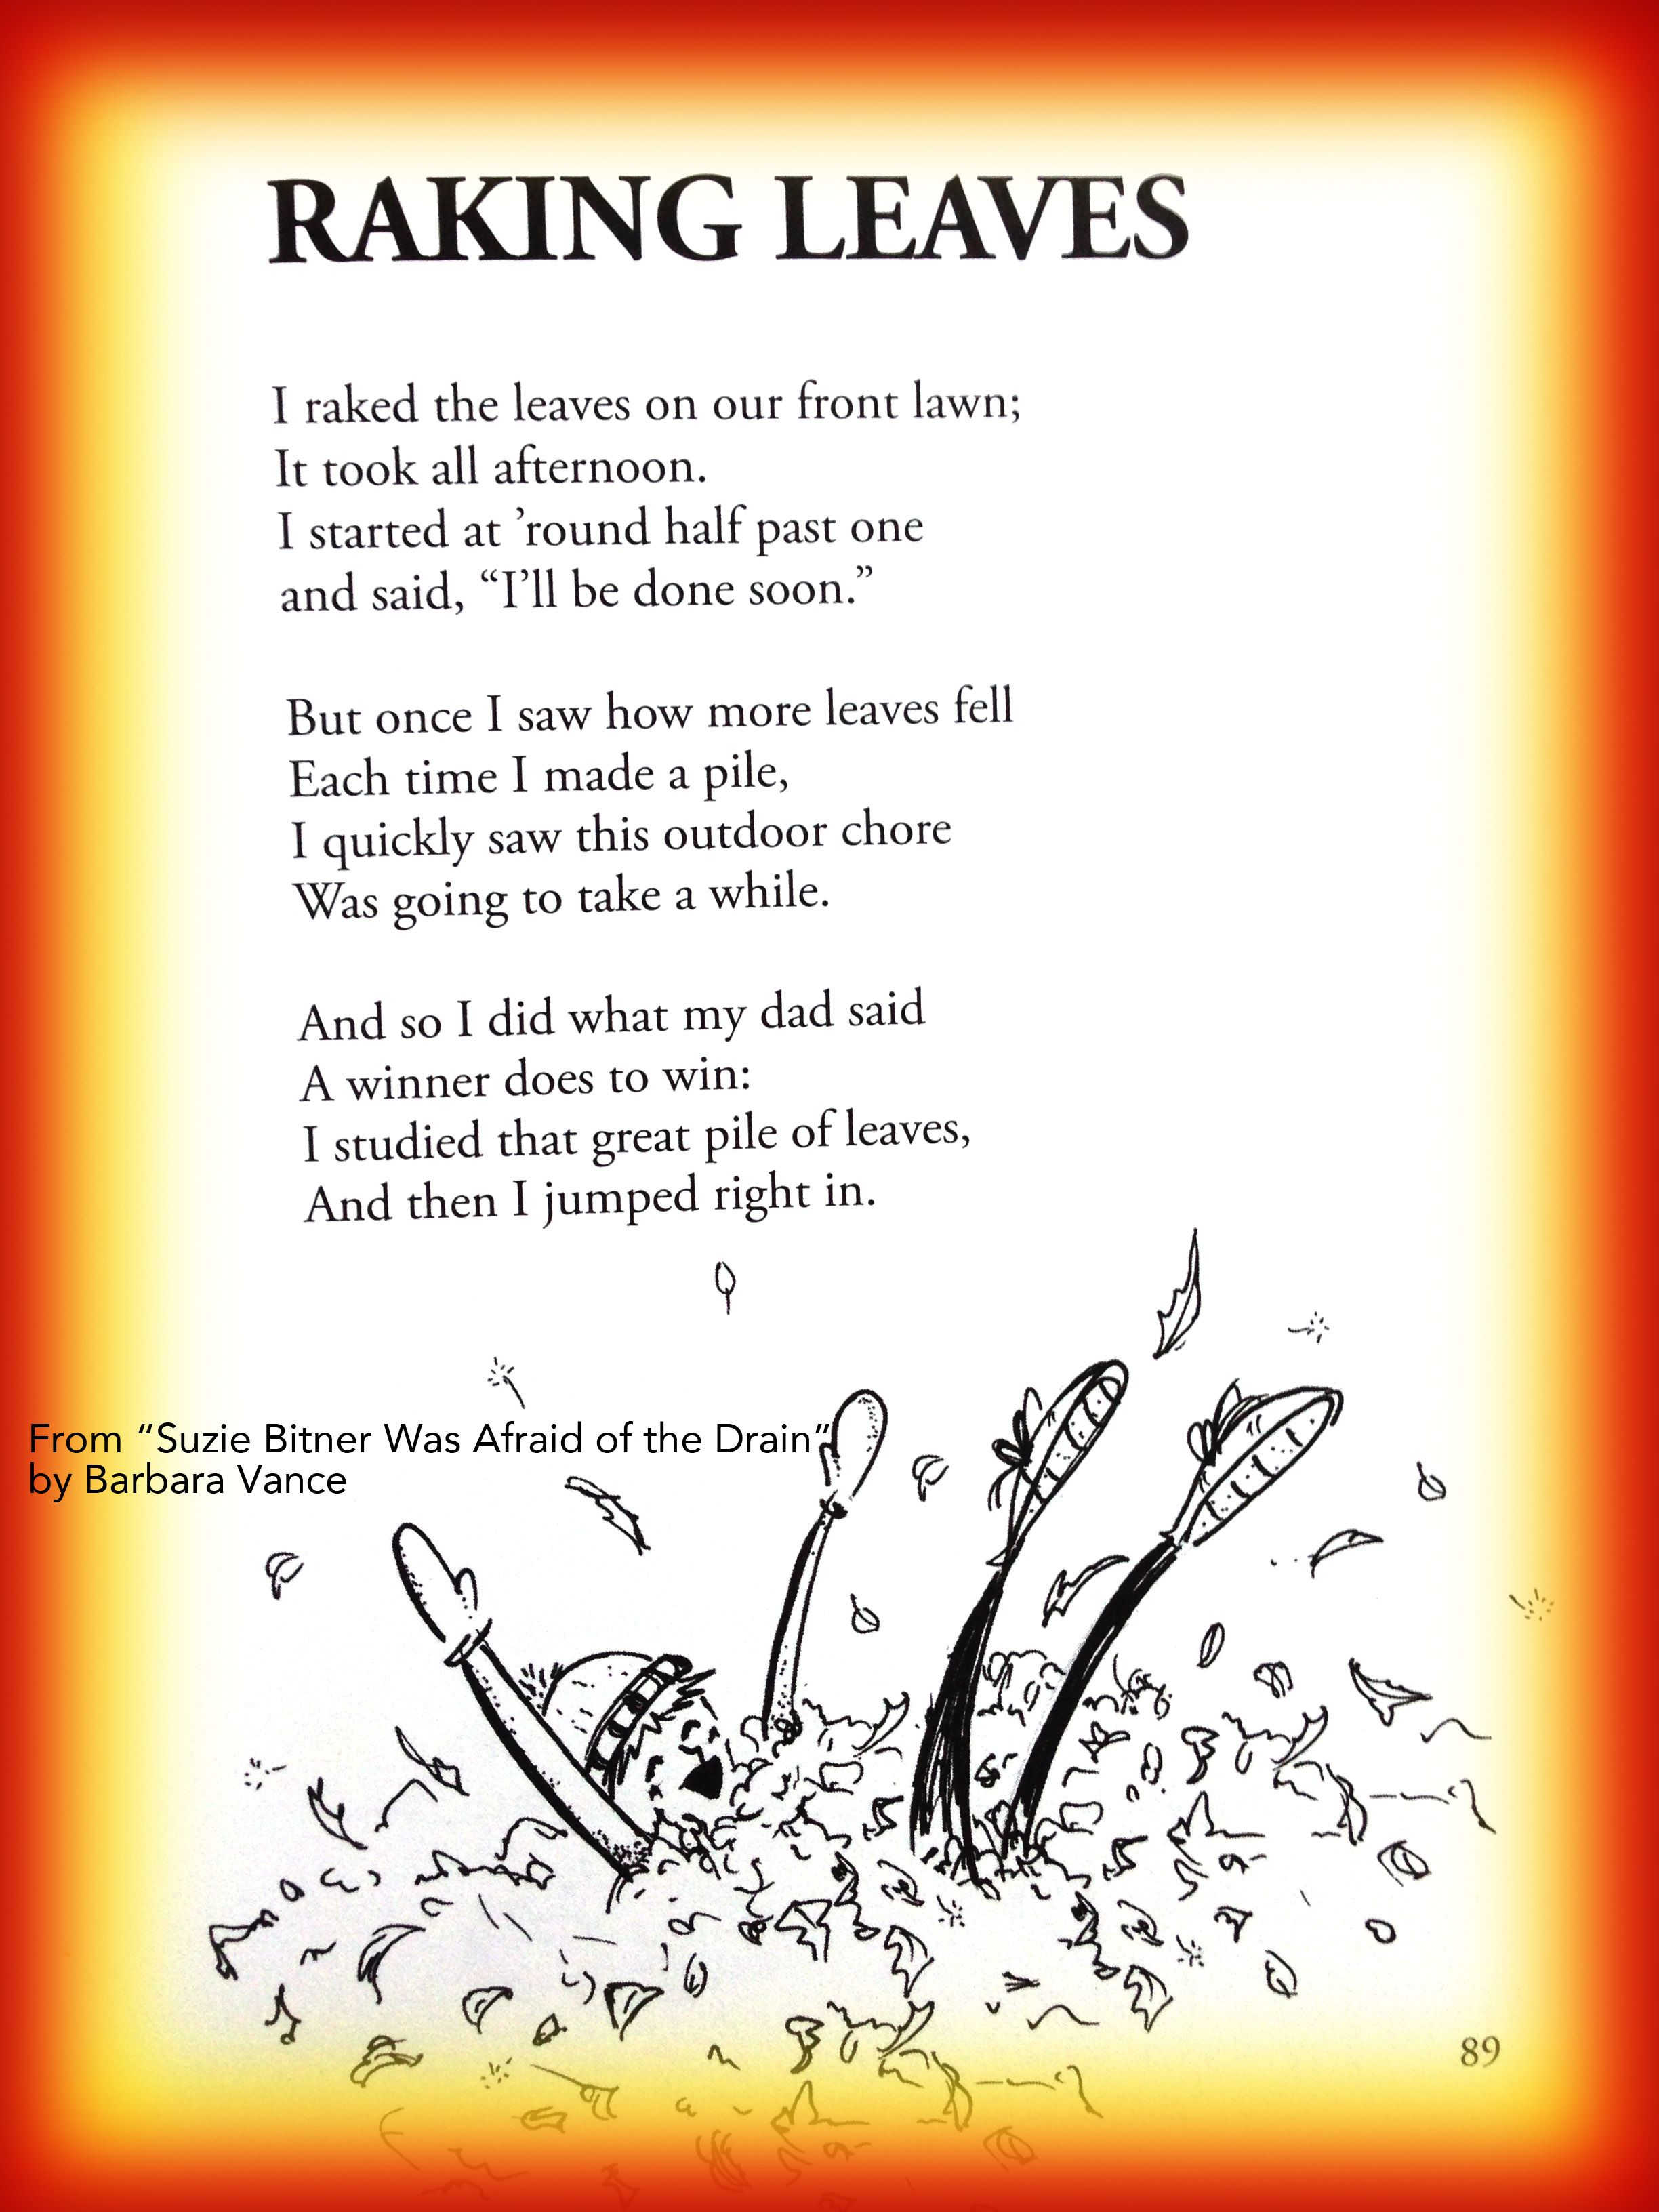 Fall Childrens Poem About Raking Leaves In Autumn Great For